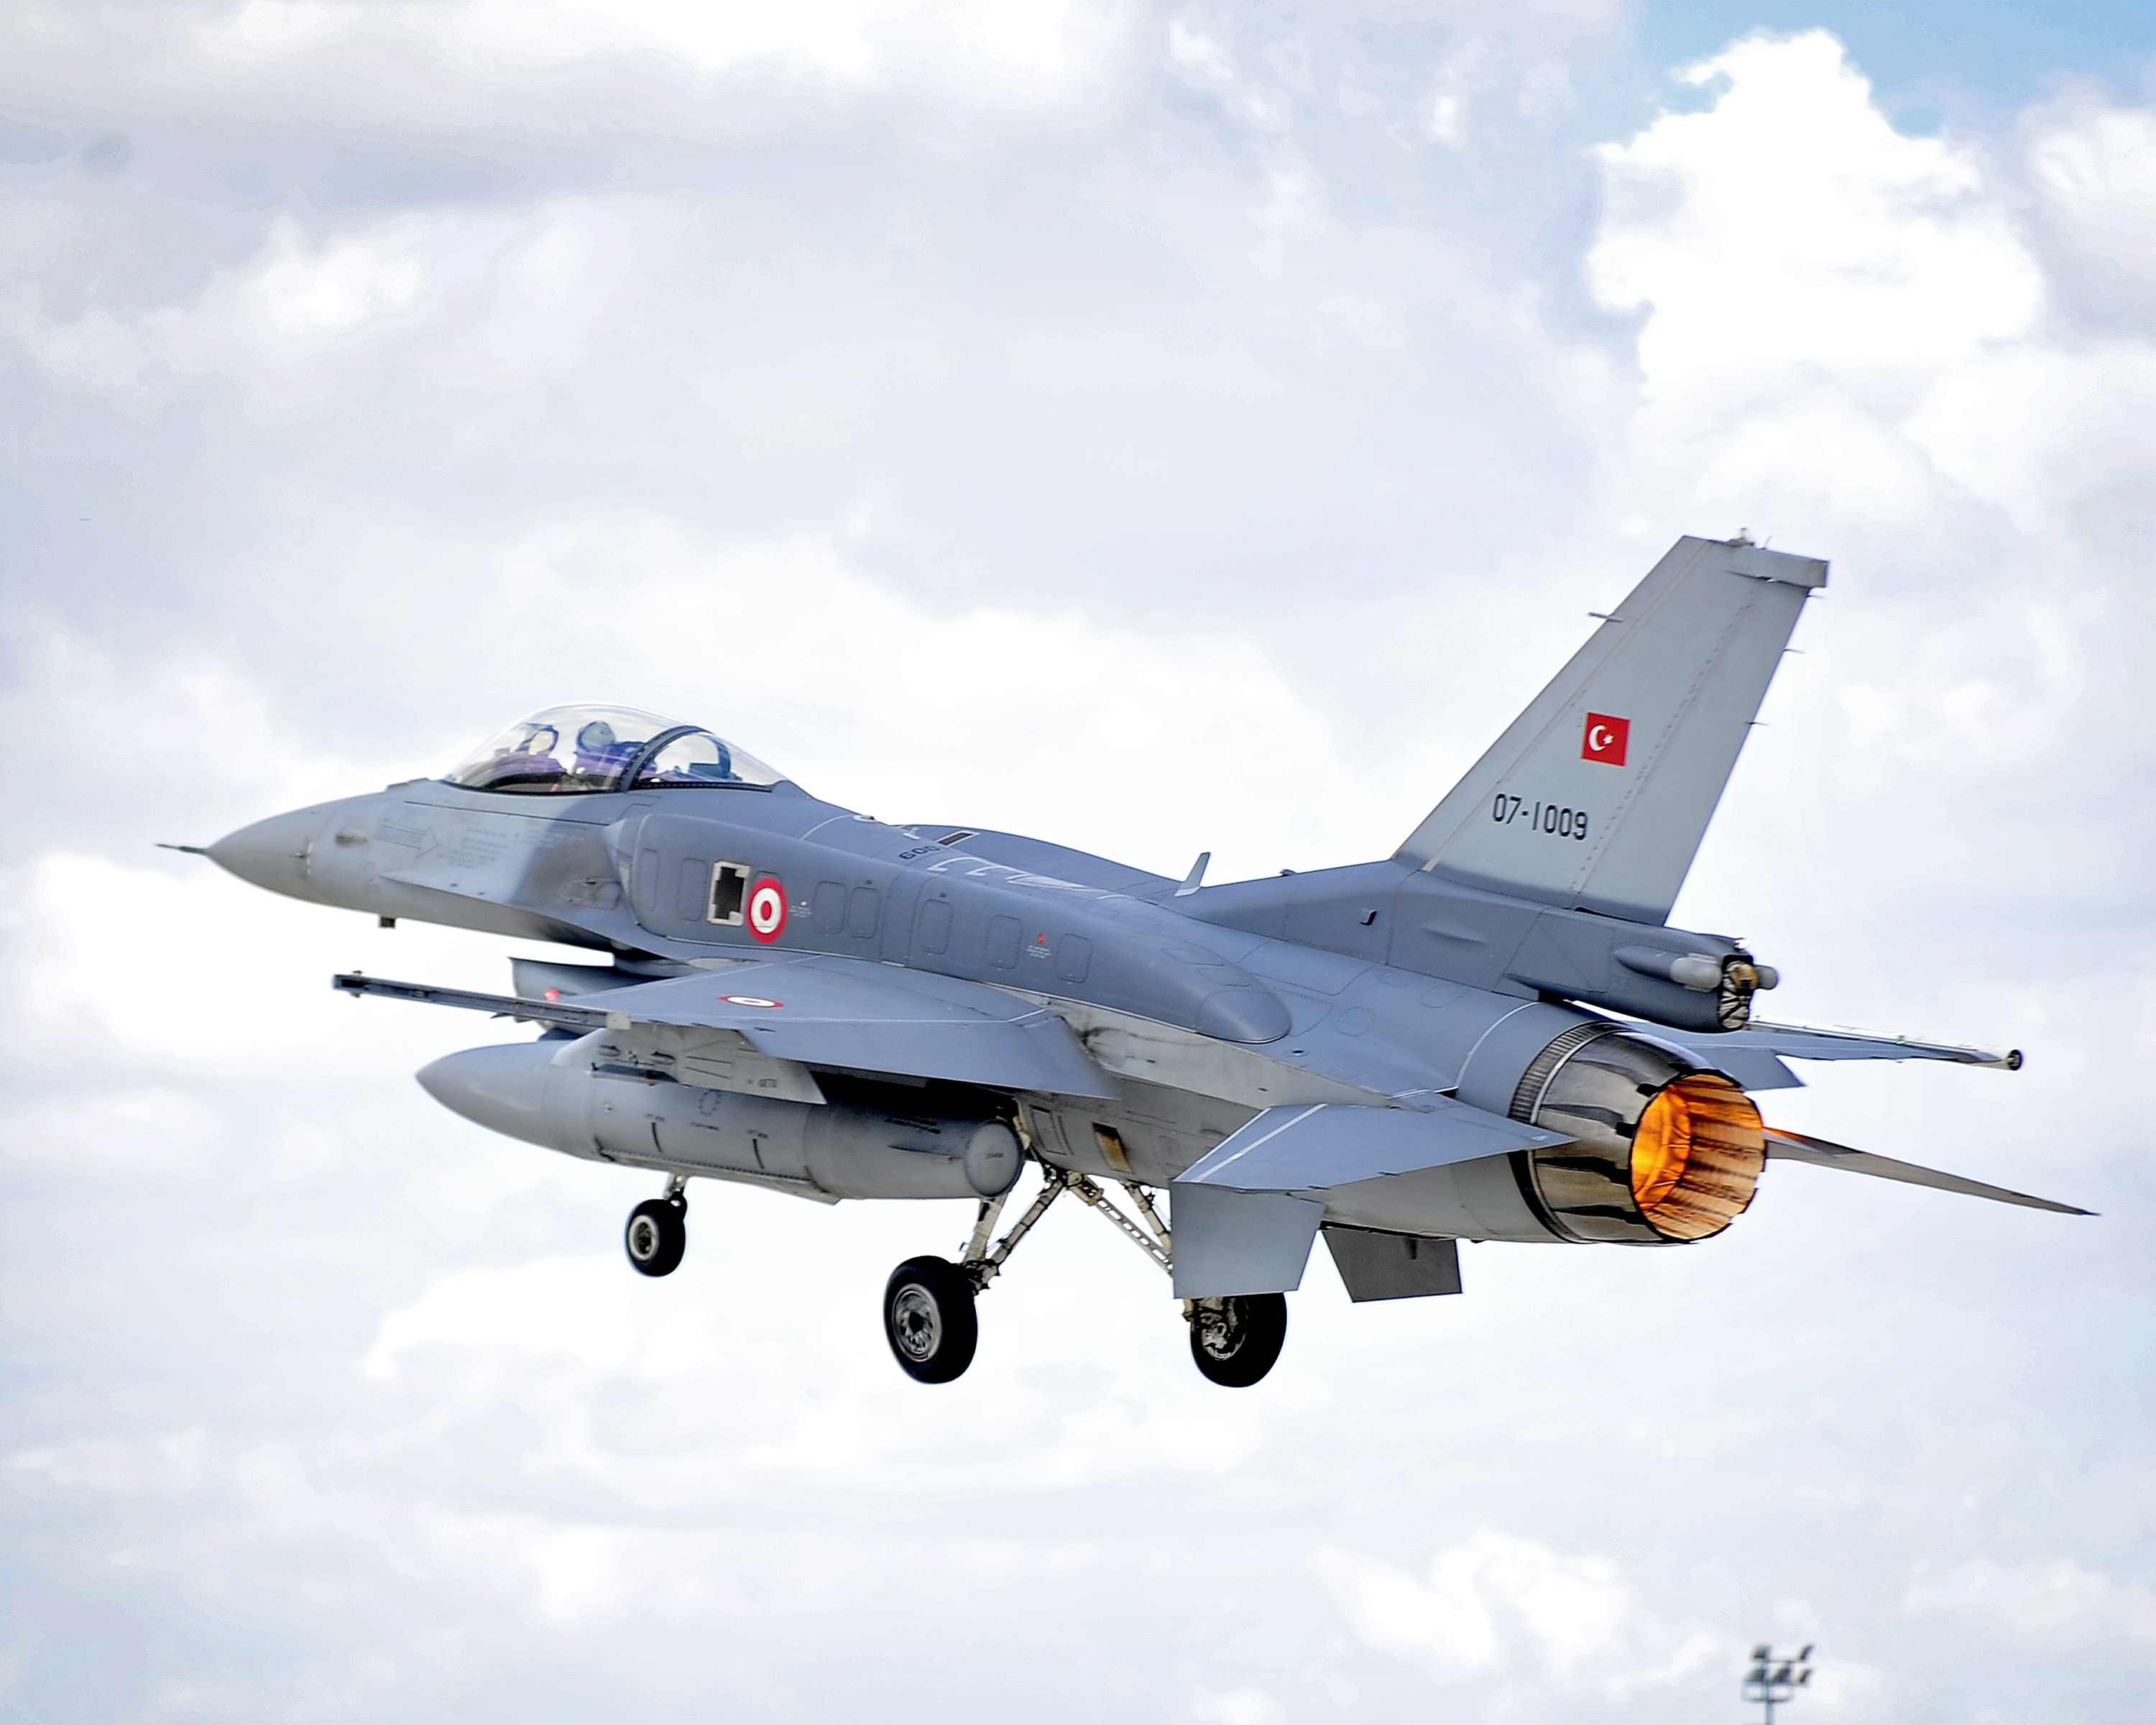 Turkish Armed Forces Photos and Videos - Page 2 Turkish_Air_Force_F-16C_Block_50_MOD_45157793